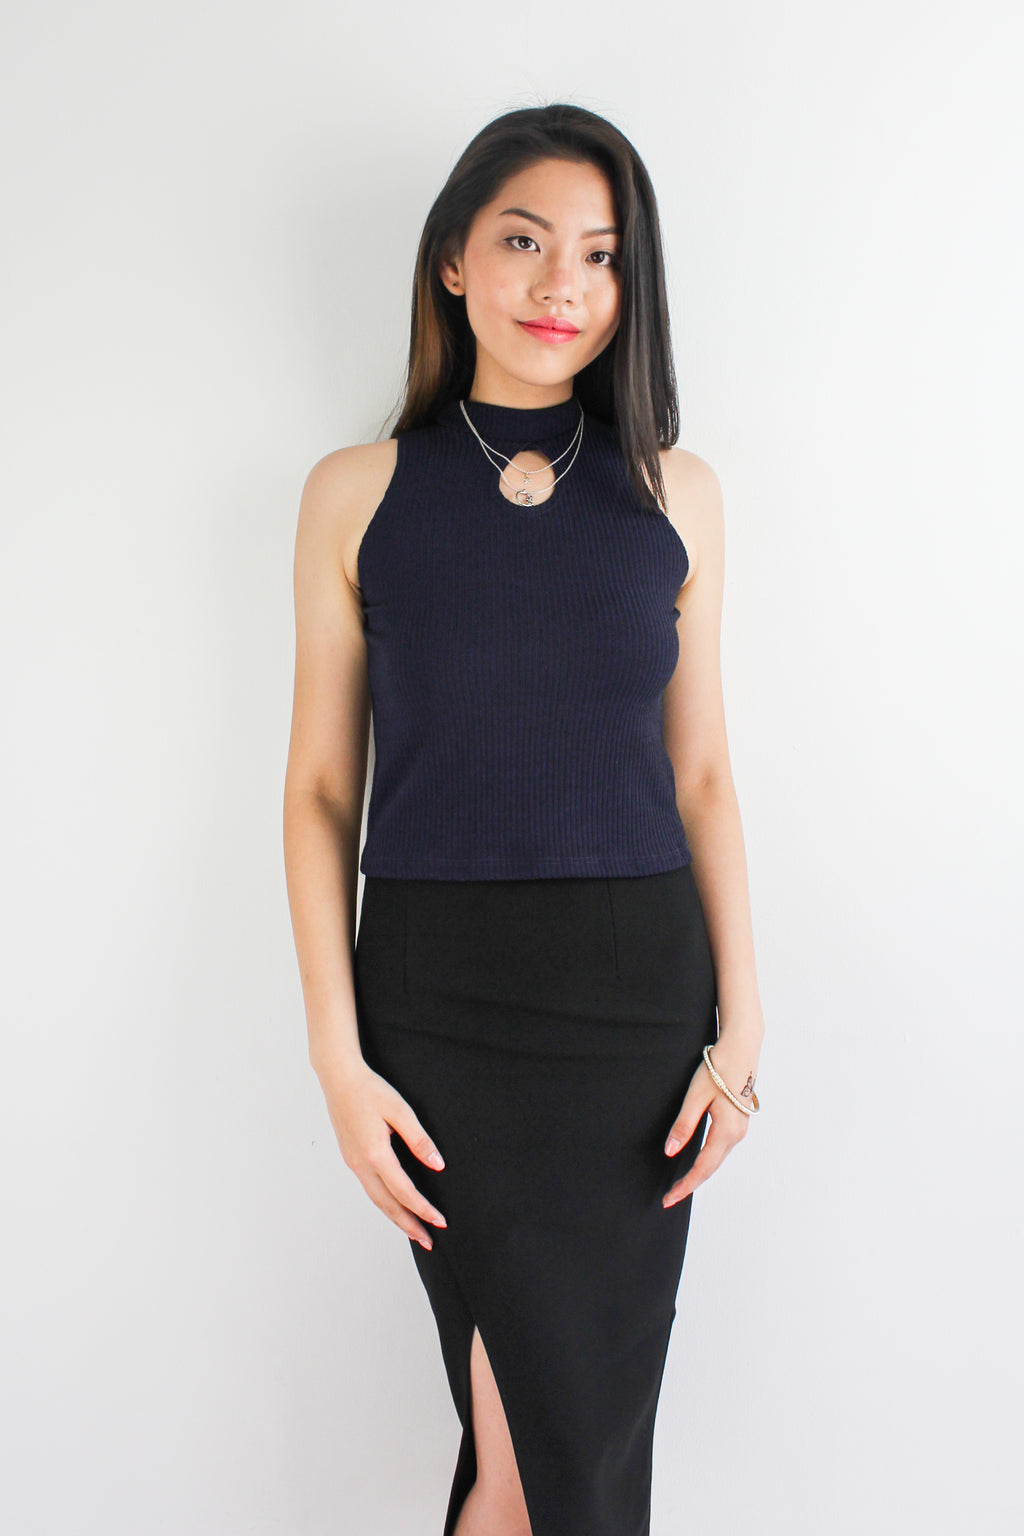 Peep Hole Top in Navy Blue - TOPS - Peep Boutique